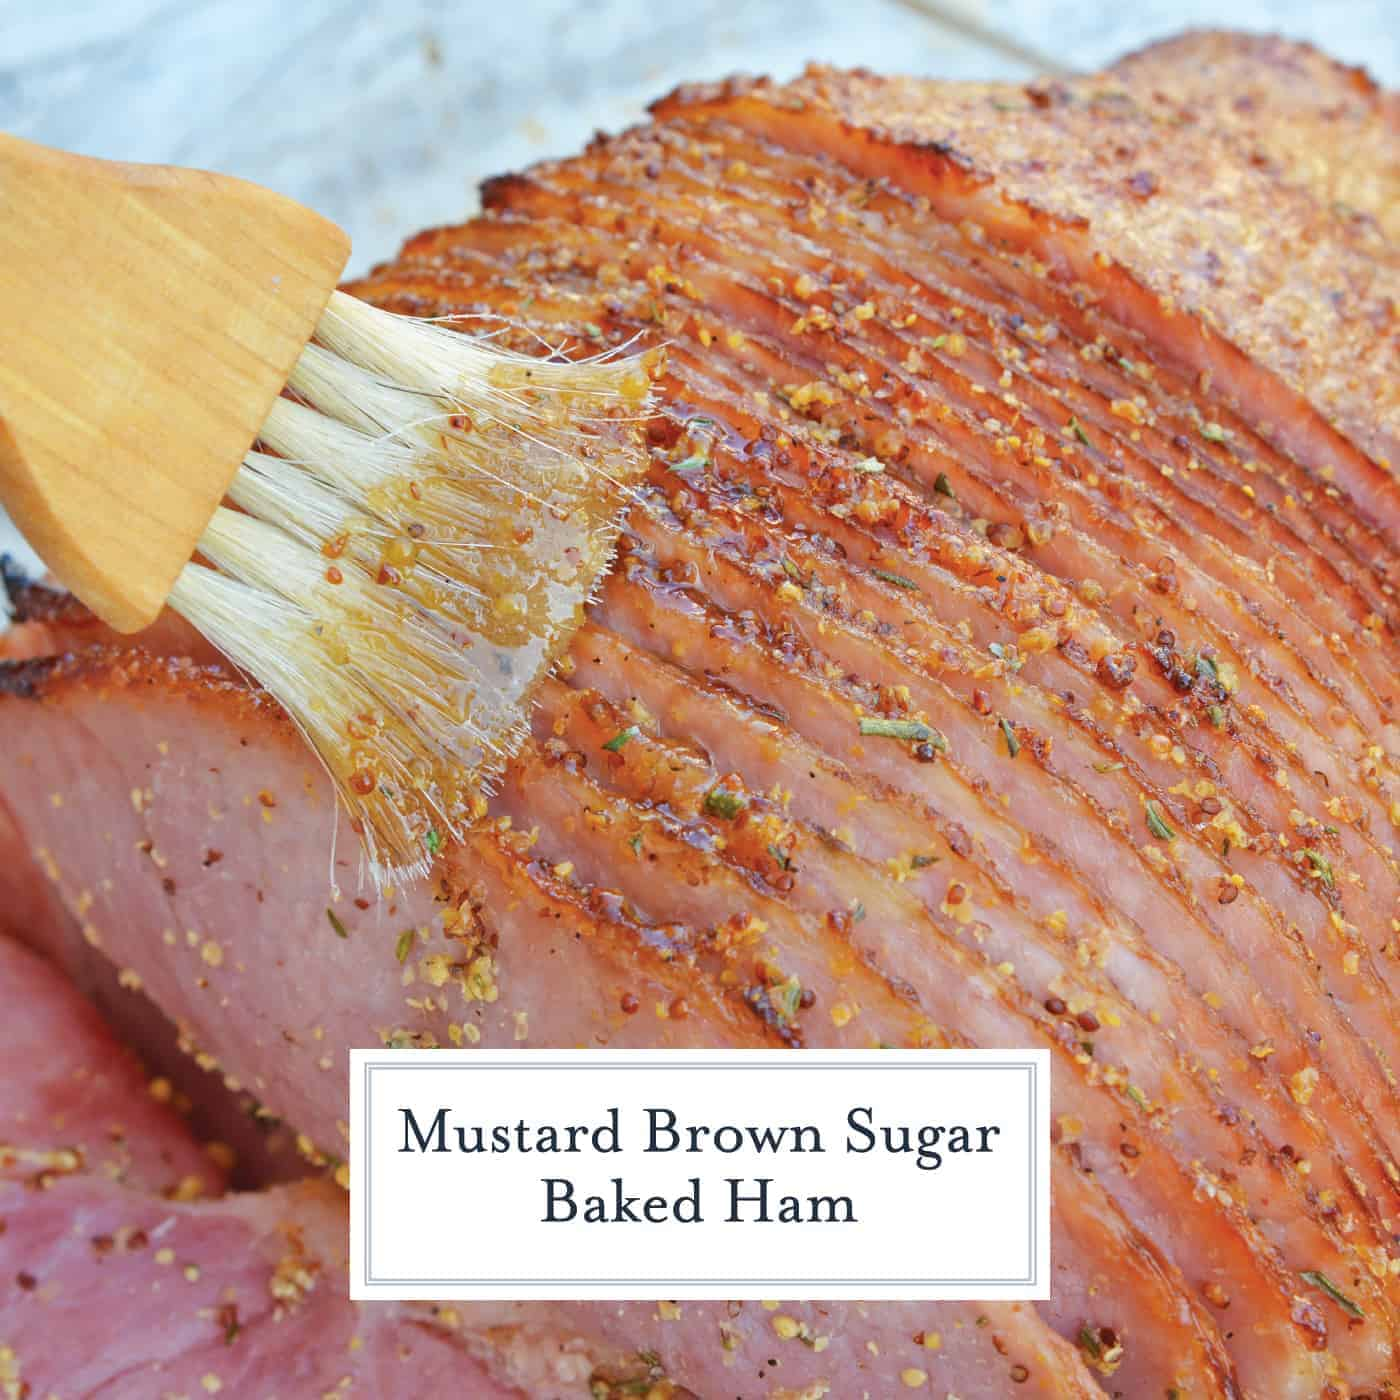 Mustard Brown Sugar Baked Ham is a ham glaze recipe that's perfect for a Christmas ham or an Easter ham. One of the best easy ham recipes! #hamglazerecipe #spiralhamrecipes #easterham #christmasham www.savoryexperiments.com